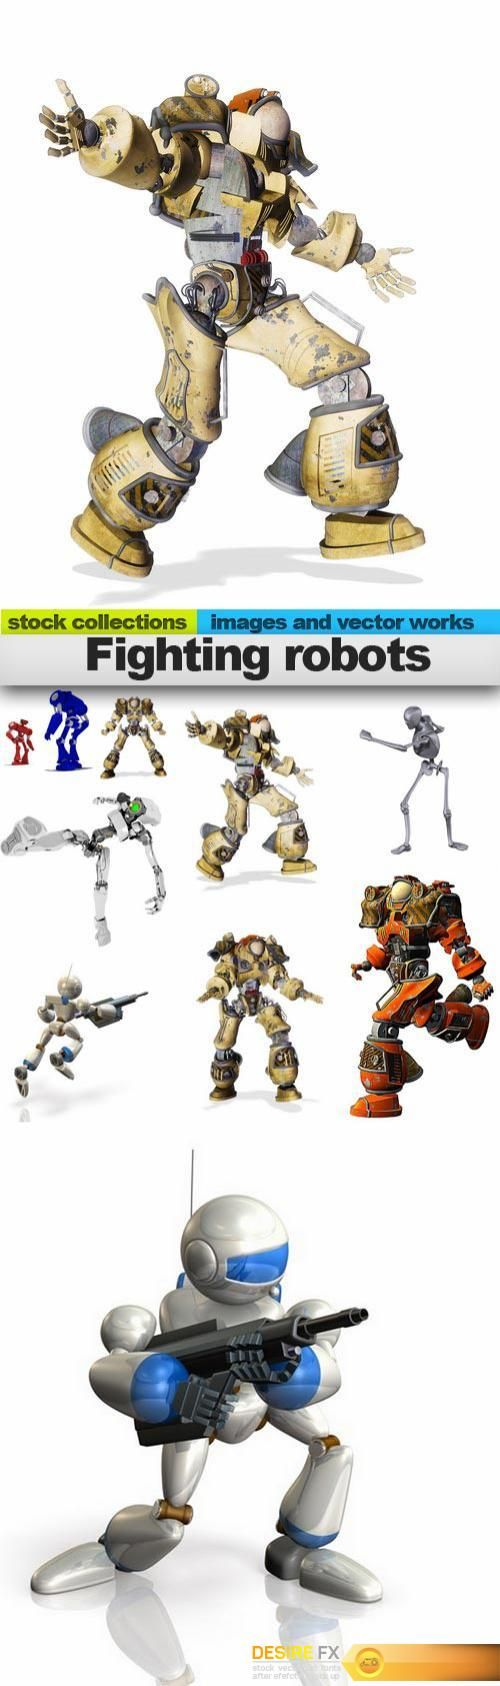 Fighting robots, 09 x UHQ JPEG  http://www.desirefx.me/fighting-robots-09-x-uhq-jpeg/